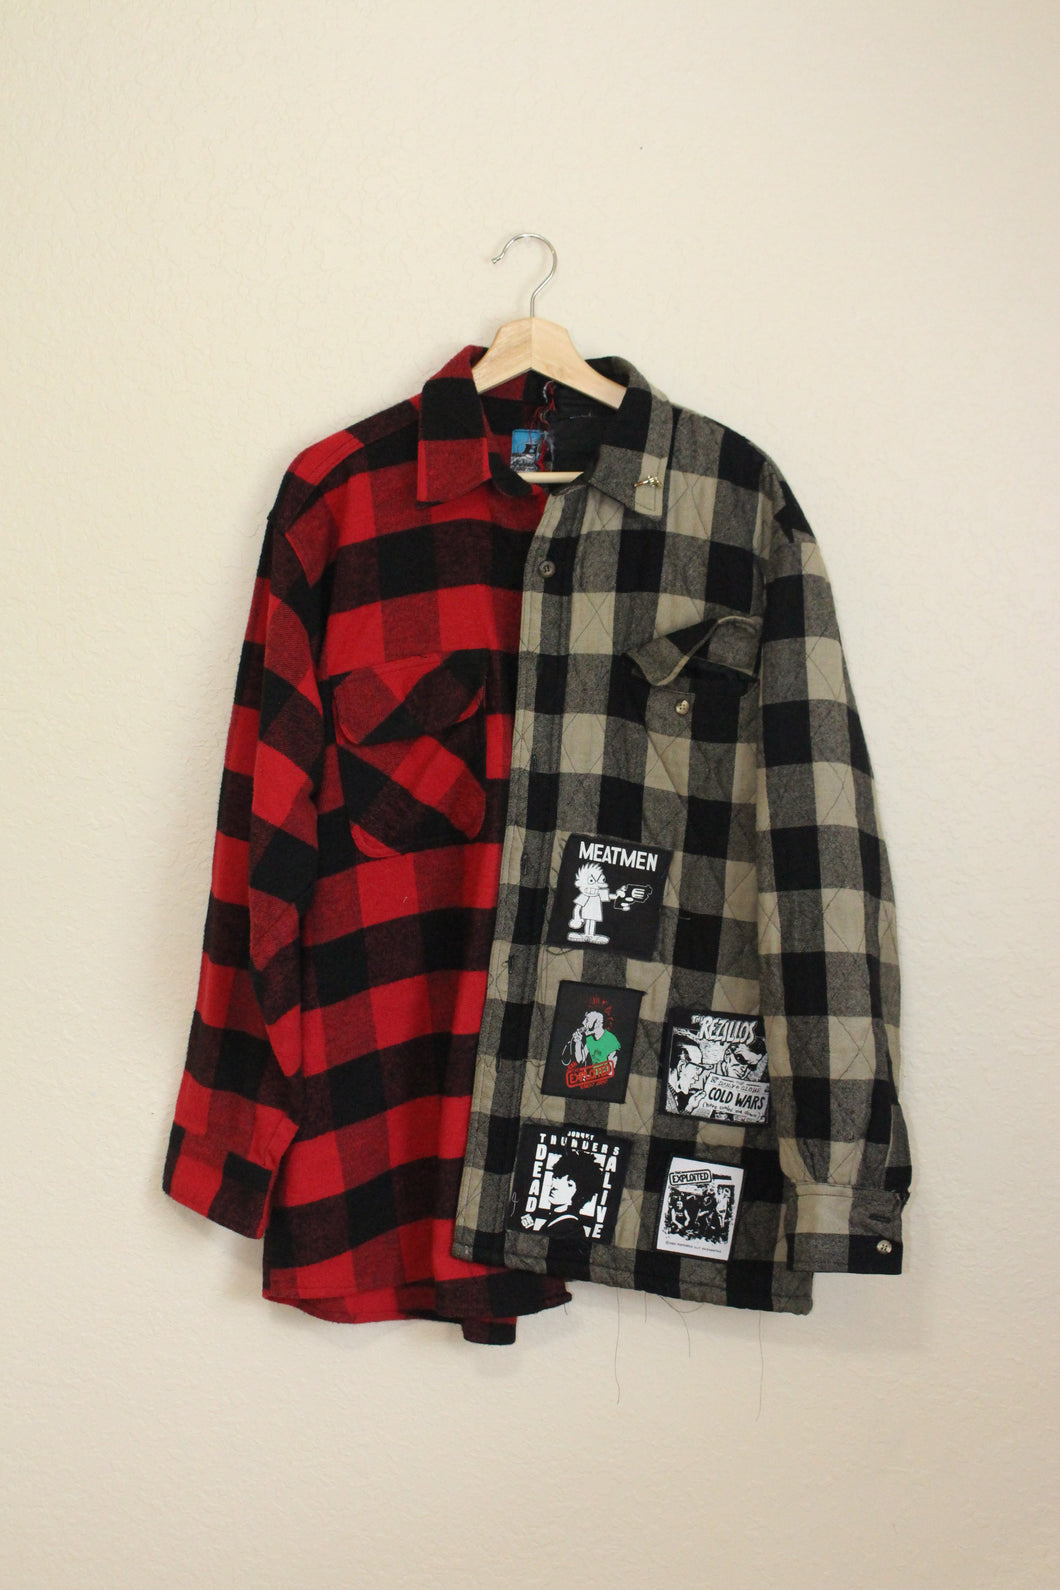 The WARRIORS Split Flannel size XL by Haus of Vain